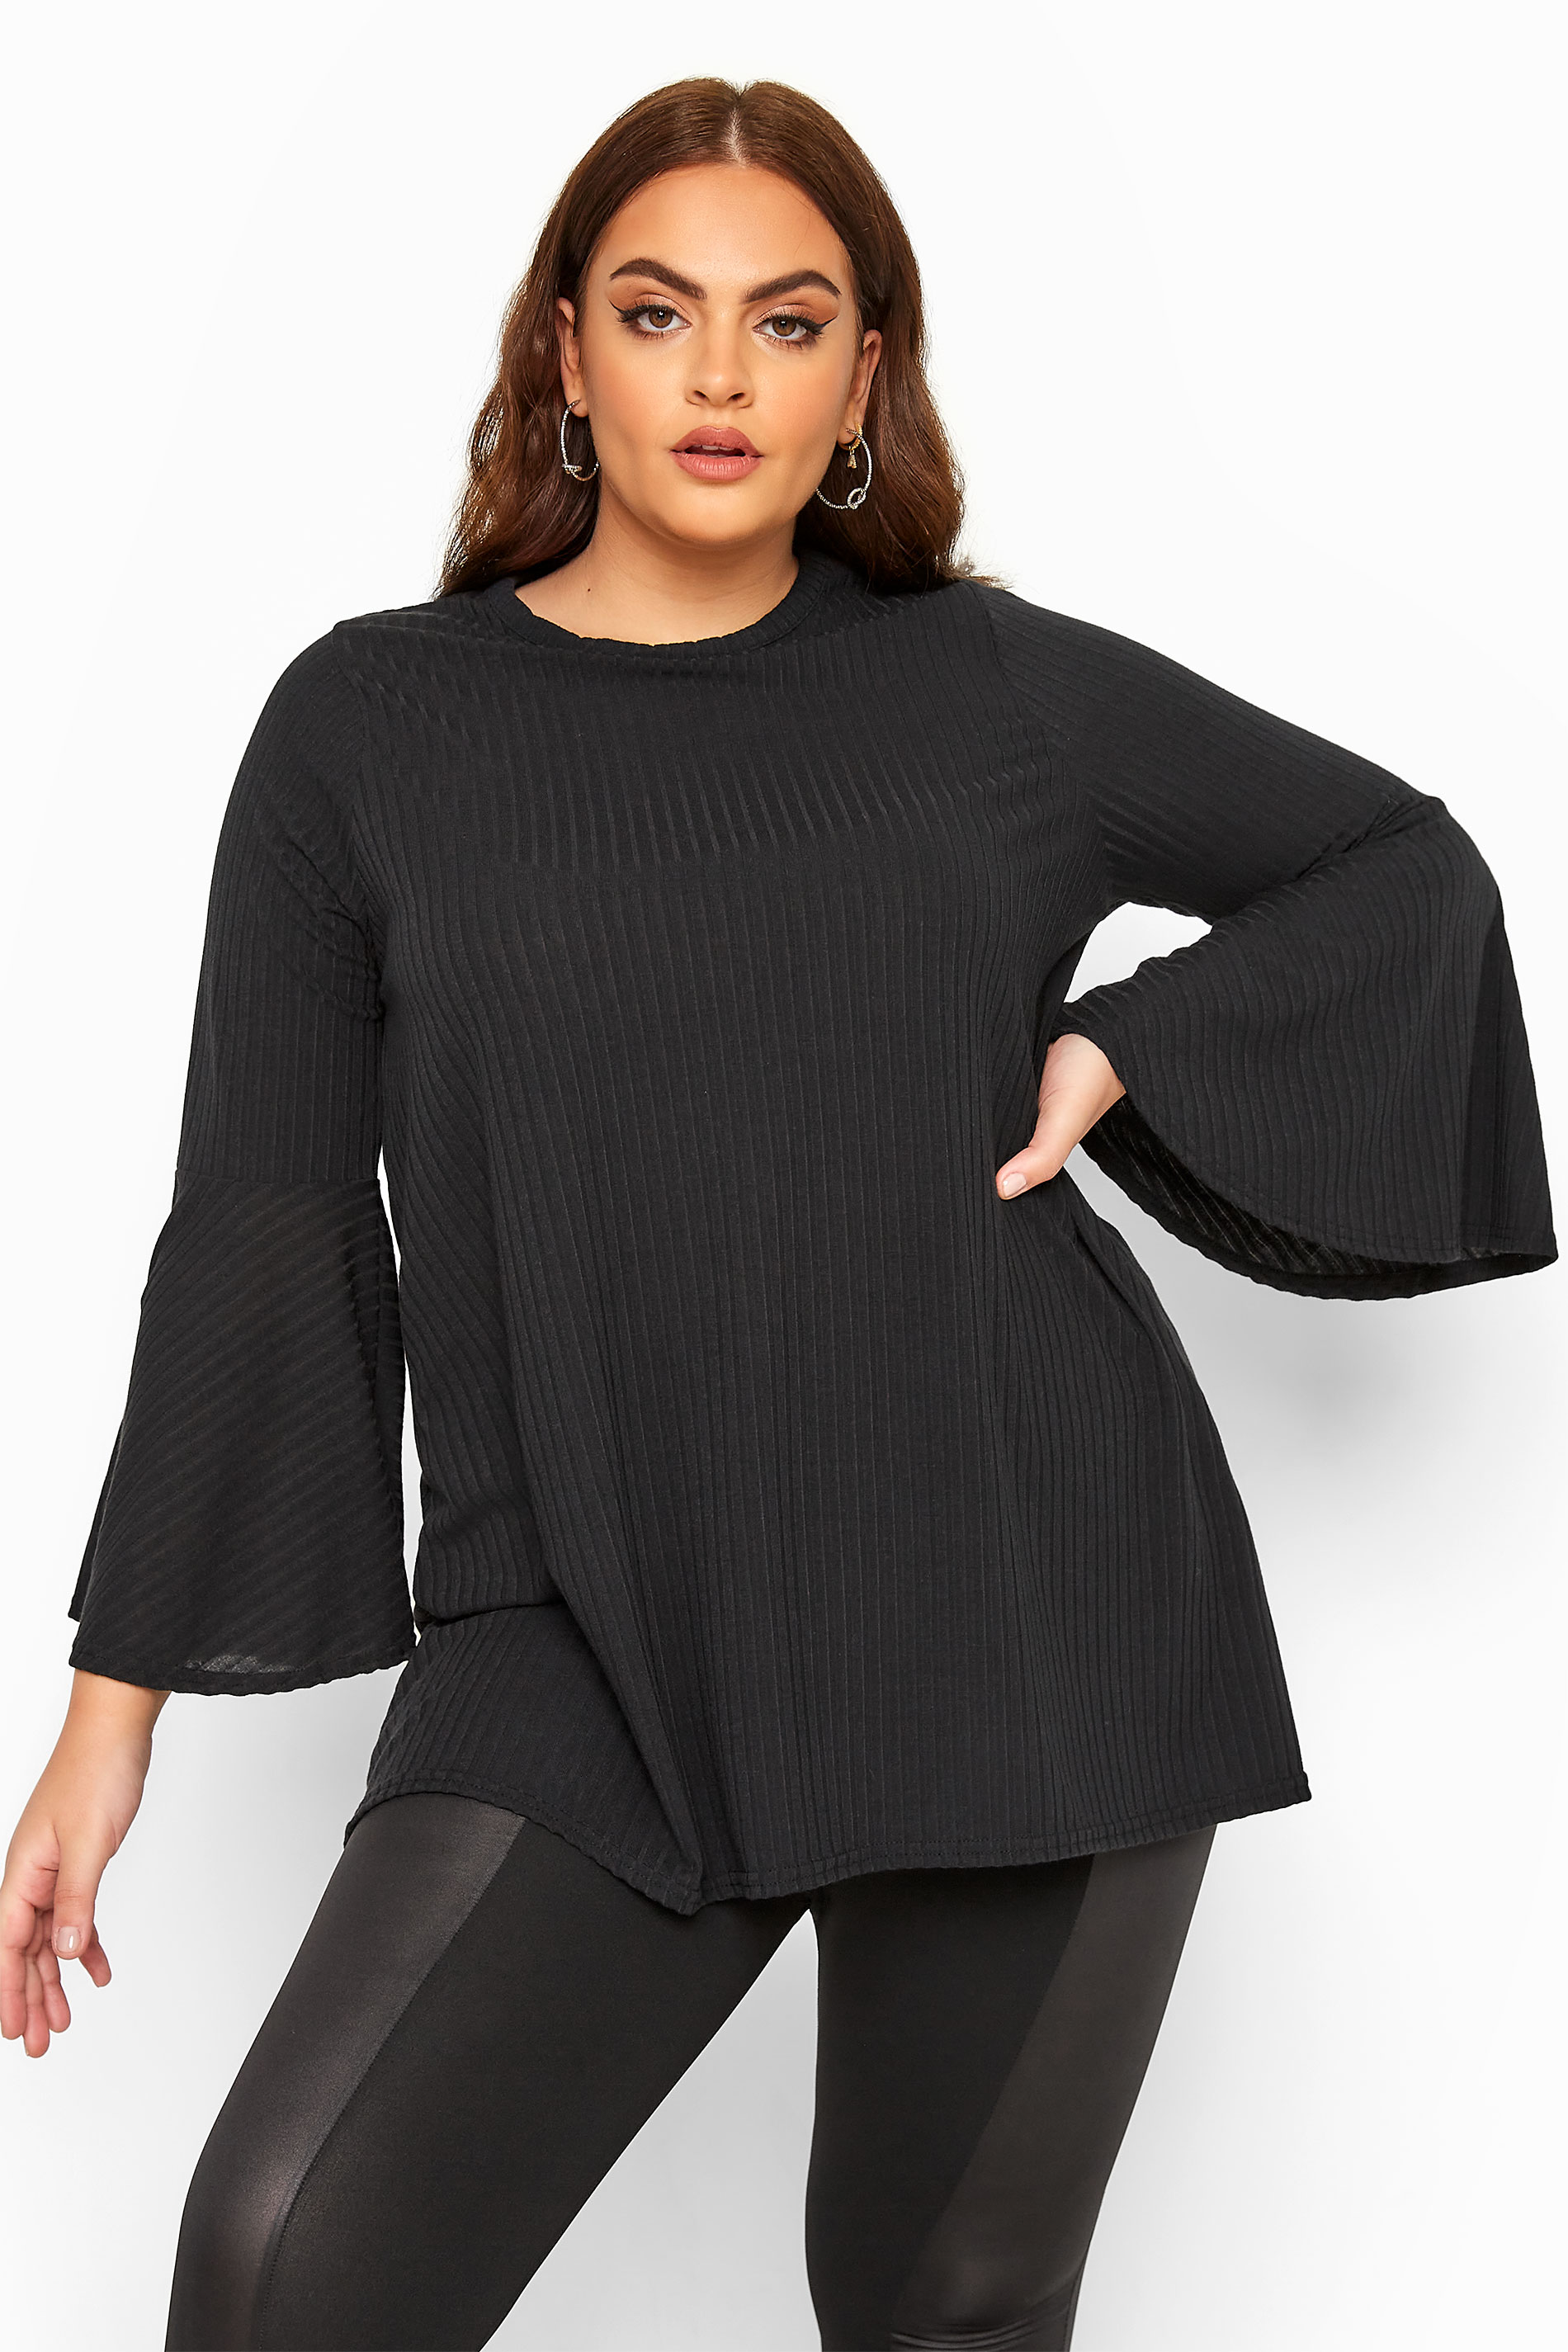 LIMITED COLLECTION Black Ribbed Flare Sleeve Top